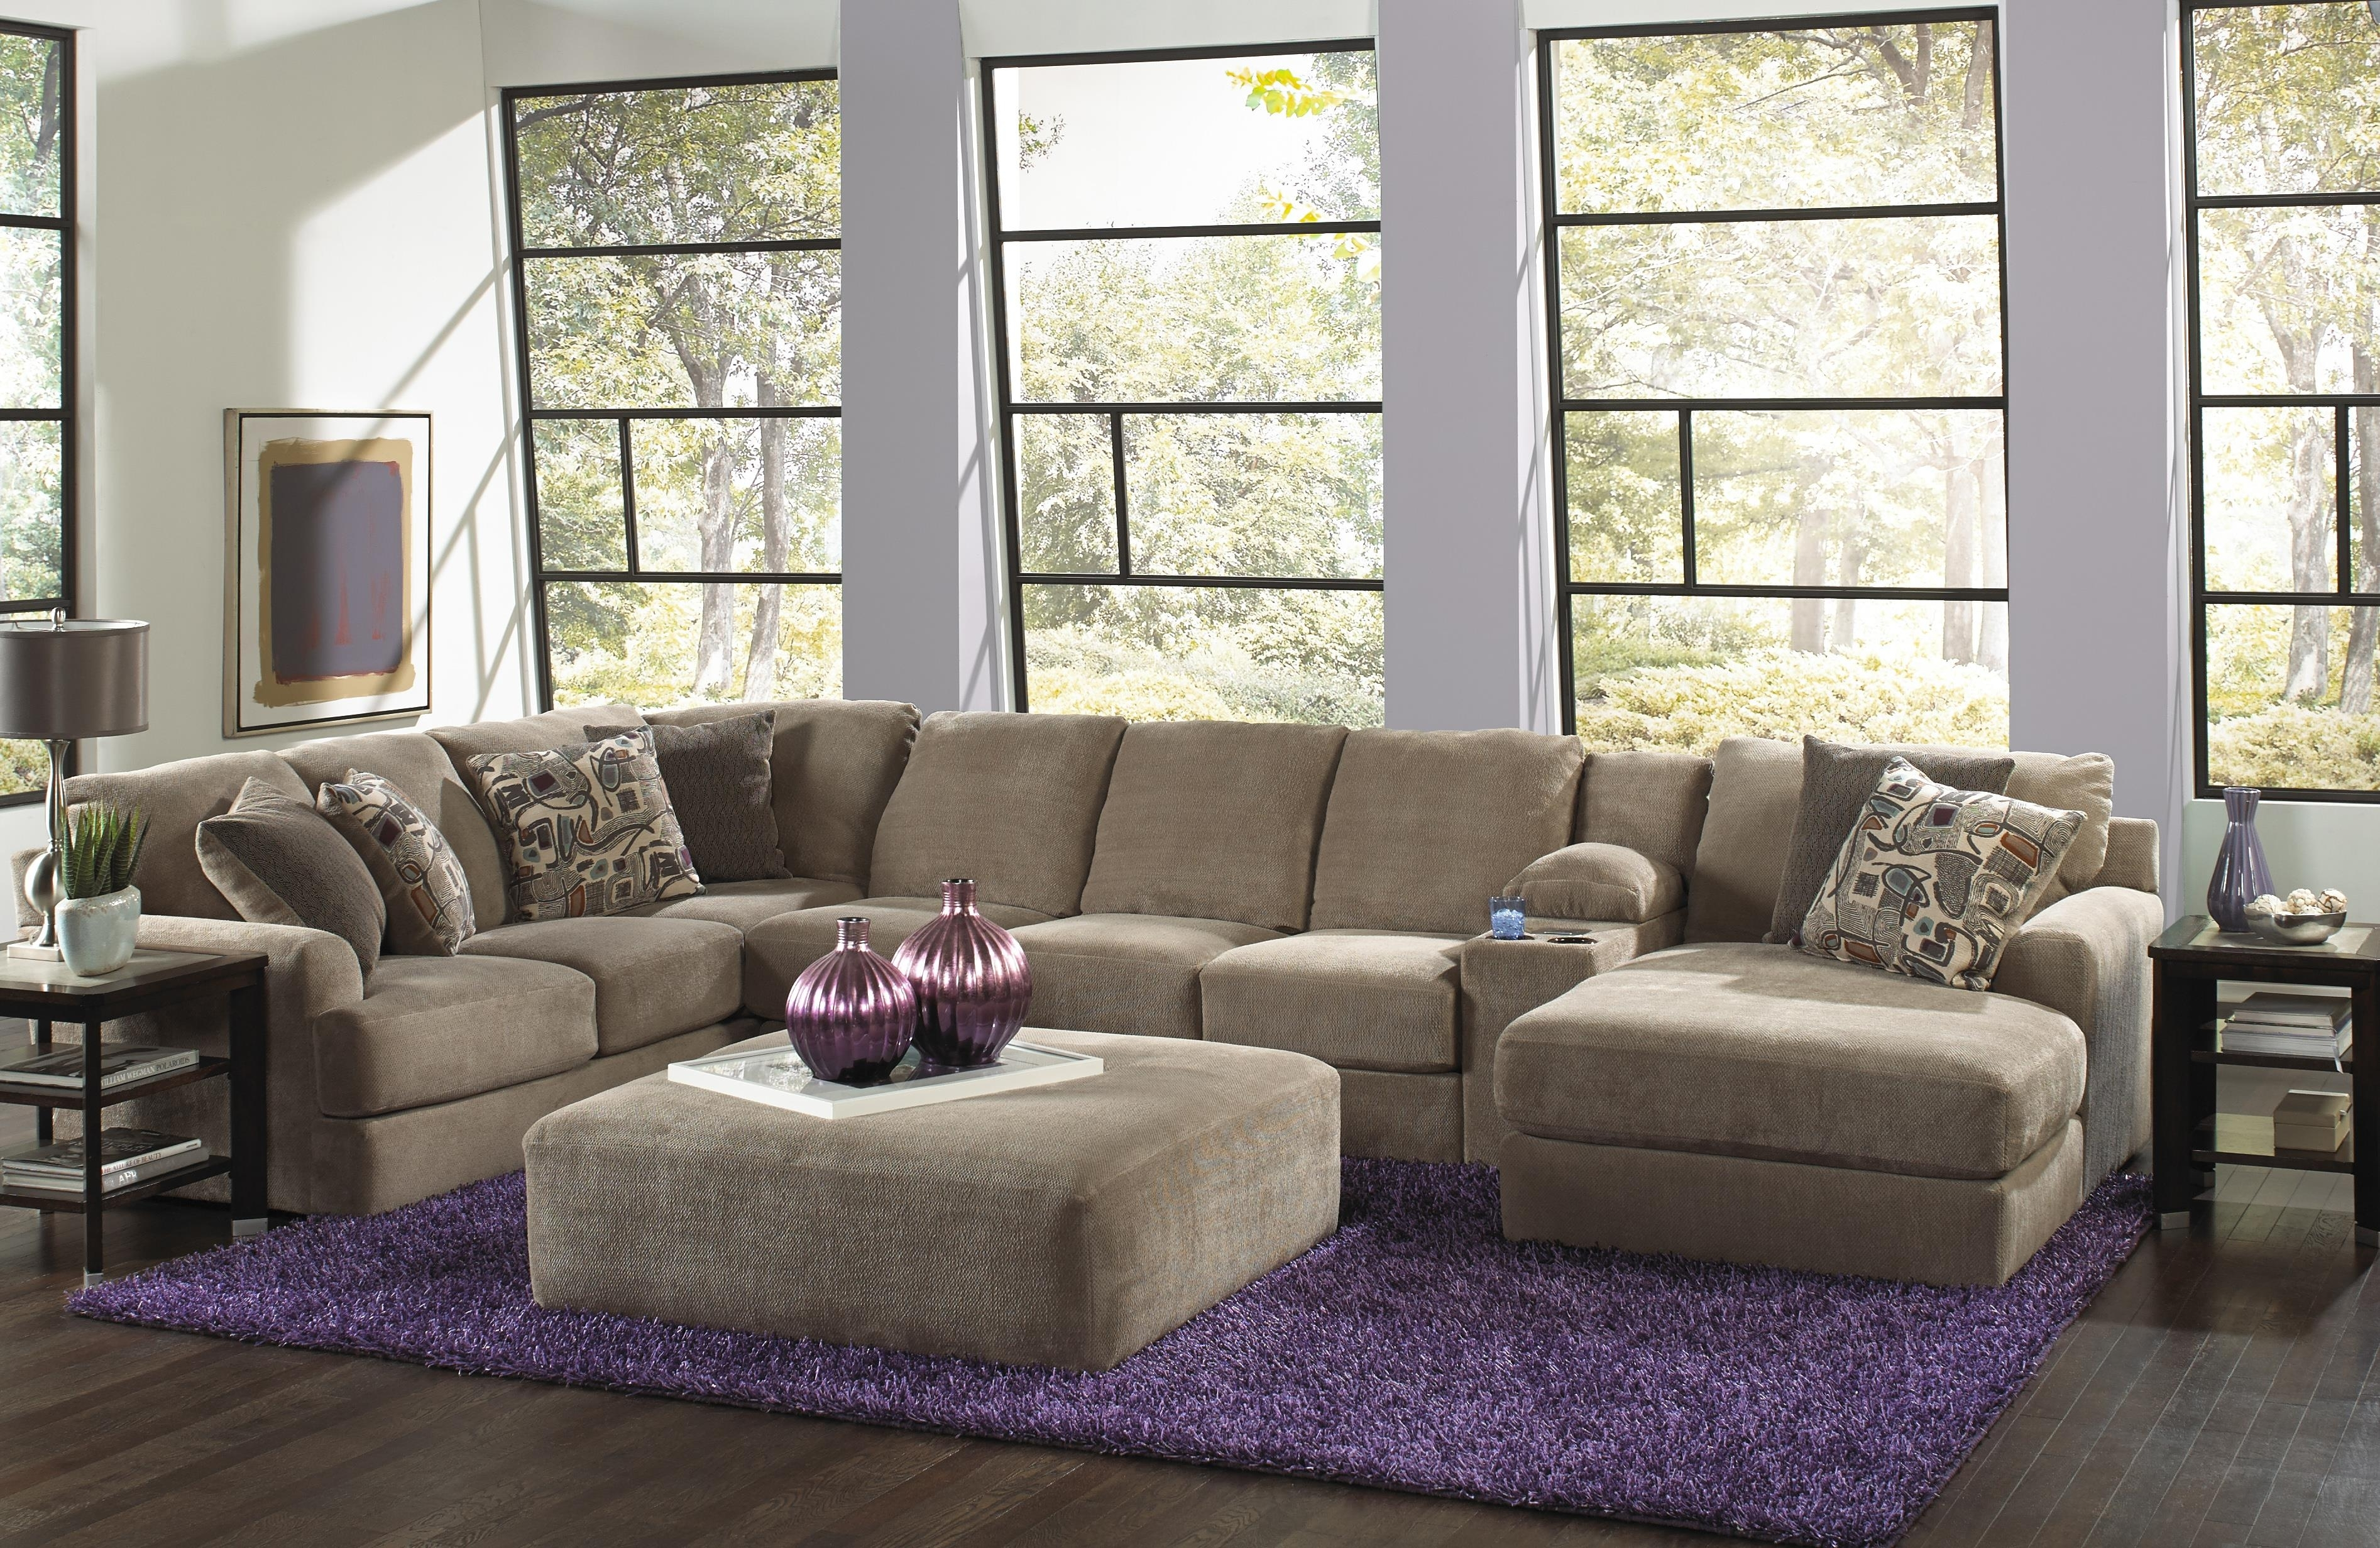 Jackson Furniture Malibu Six Seat Sectional Sofa With Console With Regard To Jackson 6 Piece Power Reclining Sectionals (Image 15 of 25)